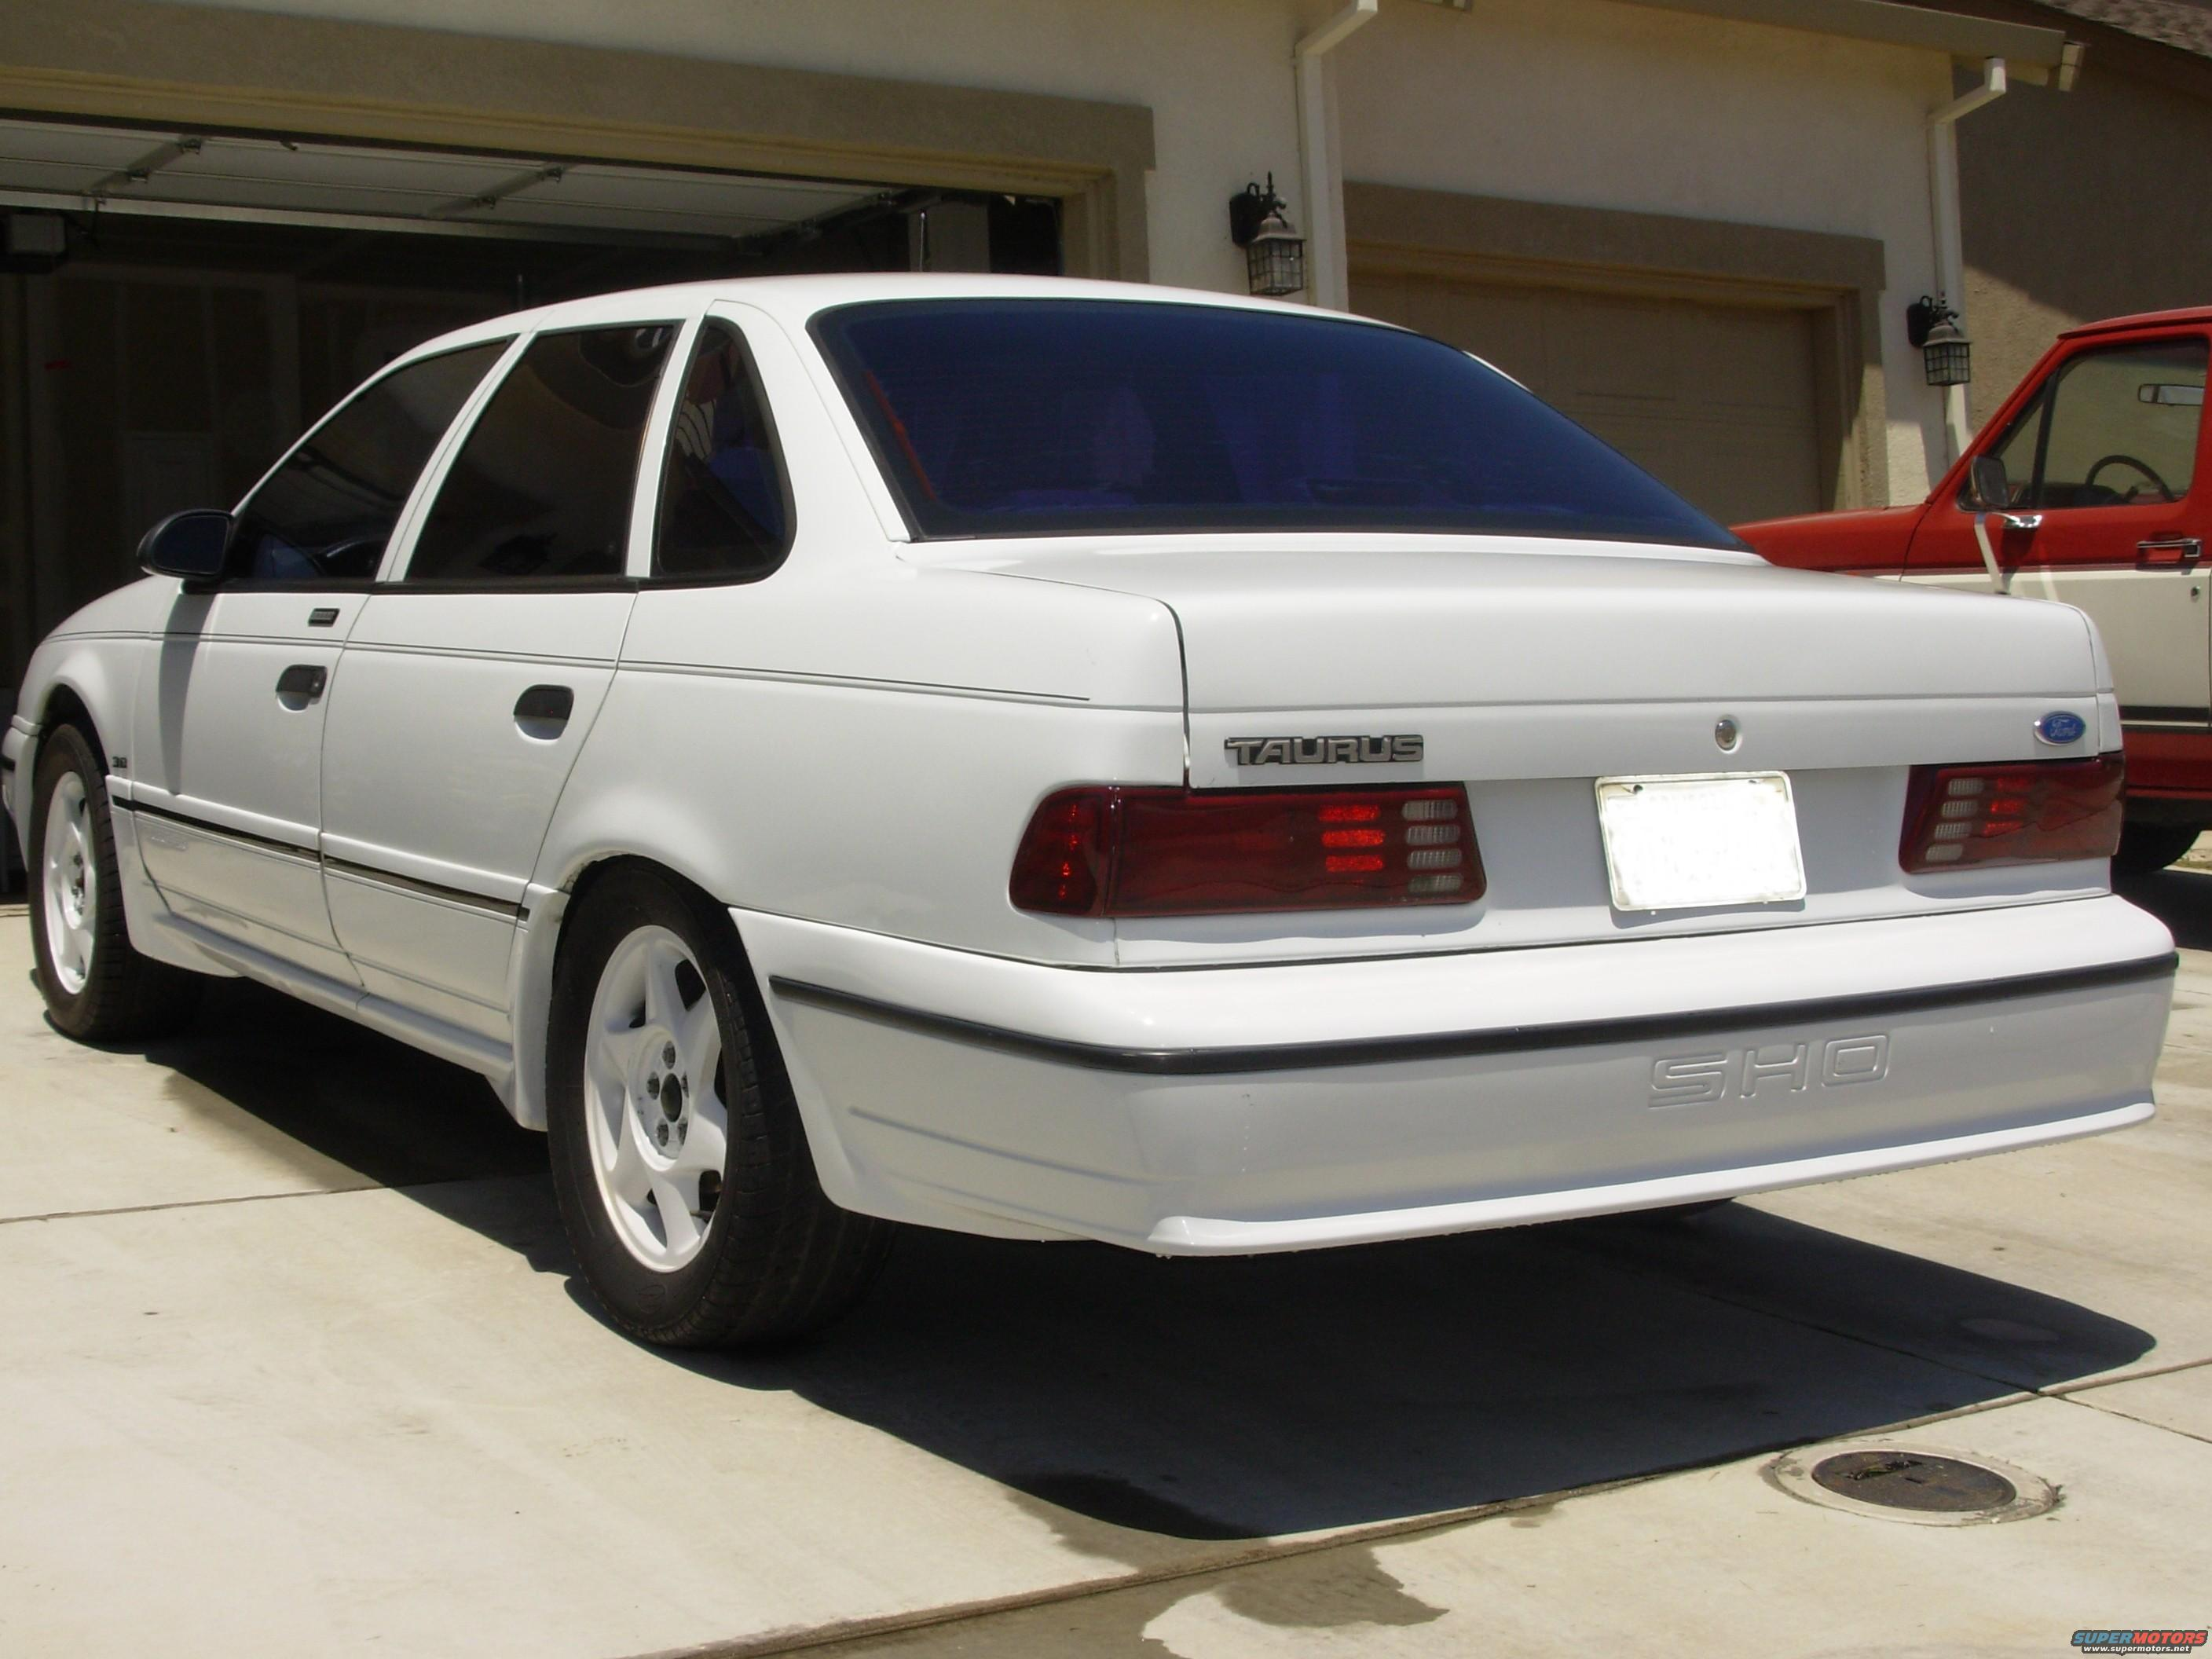 1990 Ford Taurus >> 1989 Ford Taurus 1989 SHO picture | SuperMotors.net